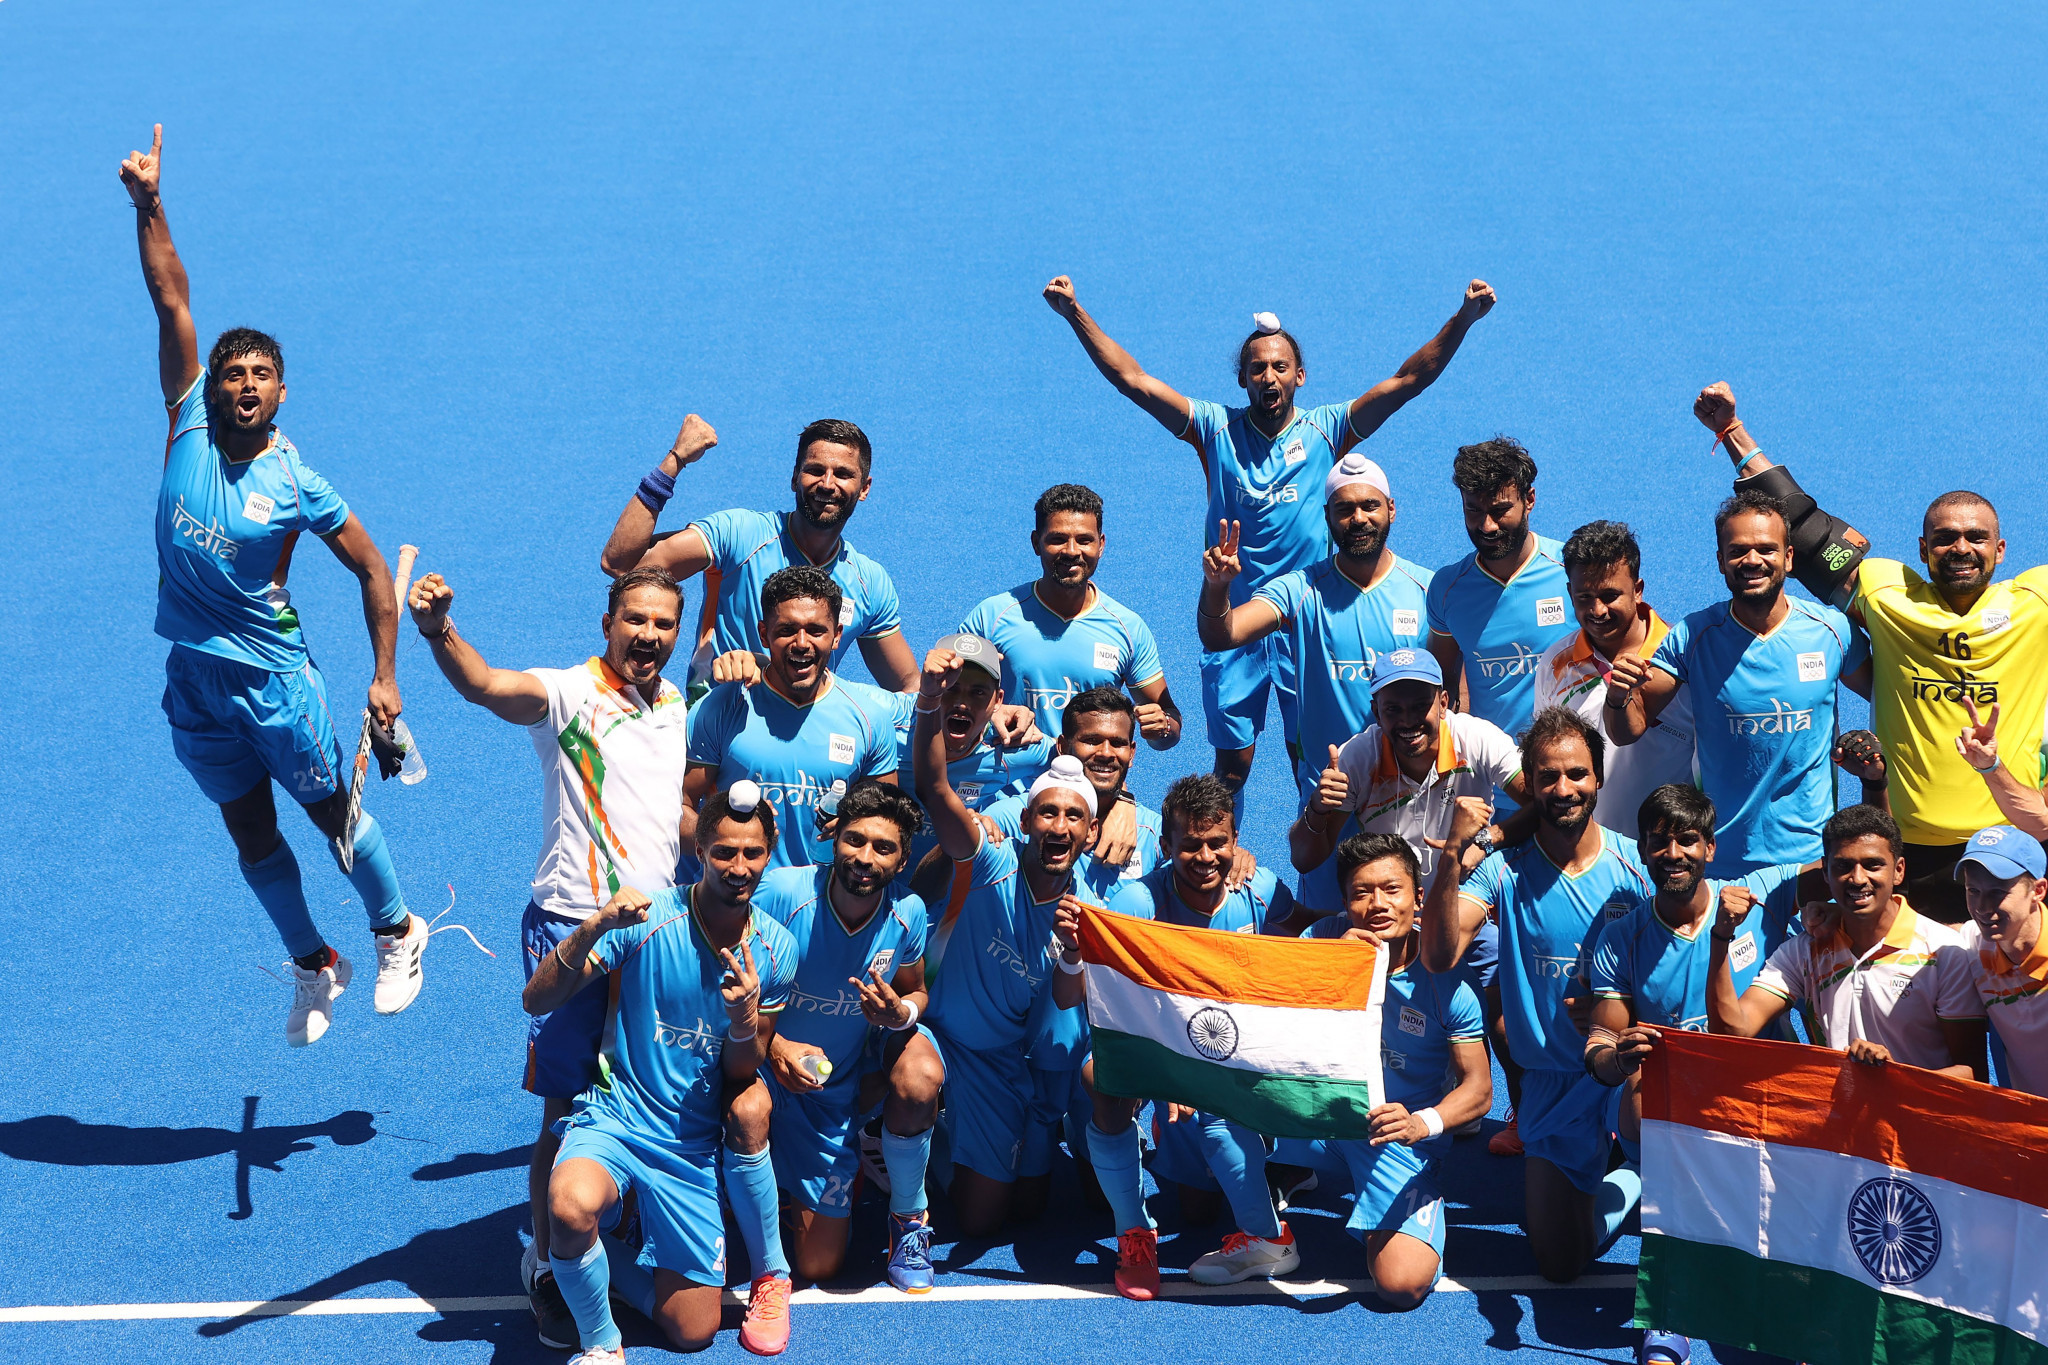 The Indian men's hockey team is ranked third in the world after winning the bronze at Tokyo 2020 - their first Olympic medal for 41 years ©Getty Images